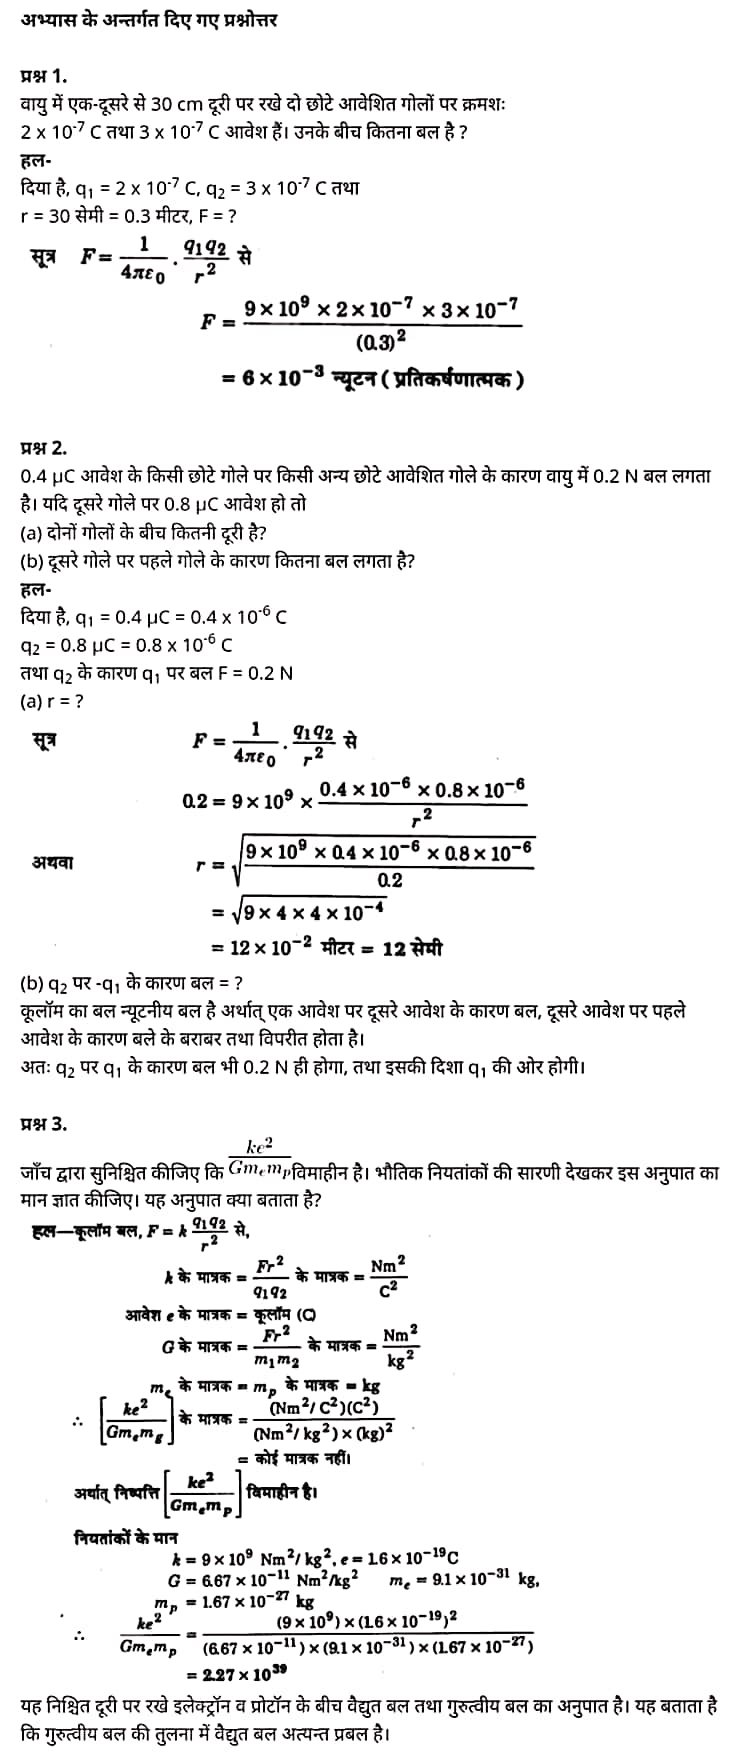 UP Board Solutions For Class 12 Physics Chapter 1 Electric Charges and Fields (वैद्युत आवेश तथा क्षेत्र)